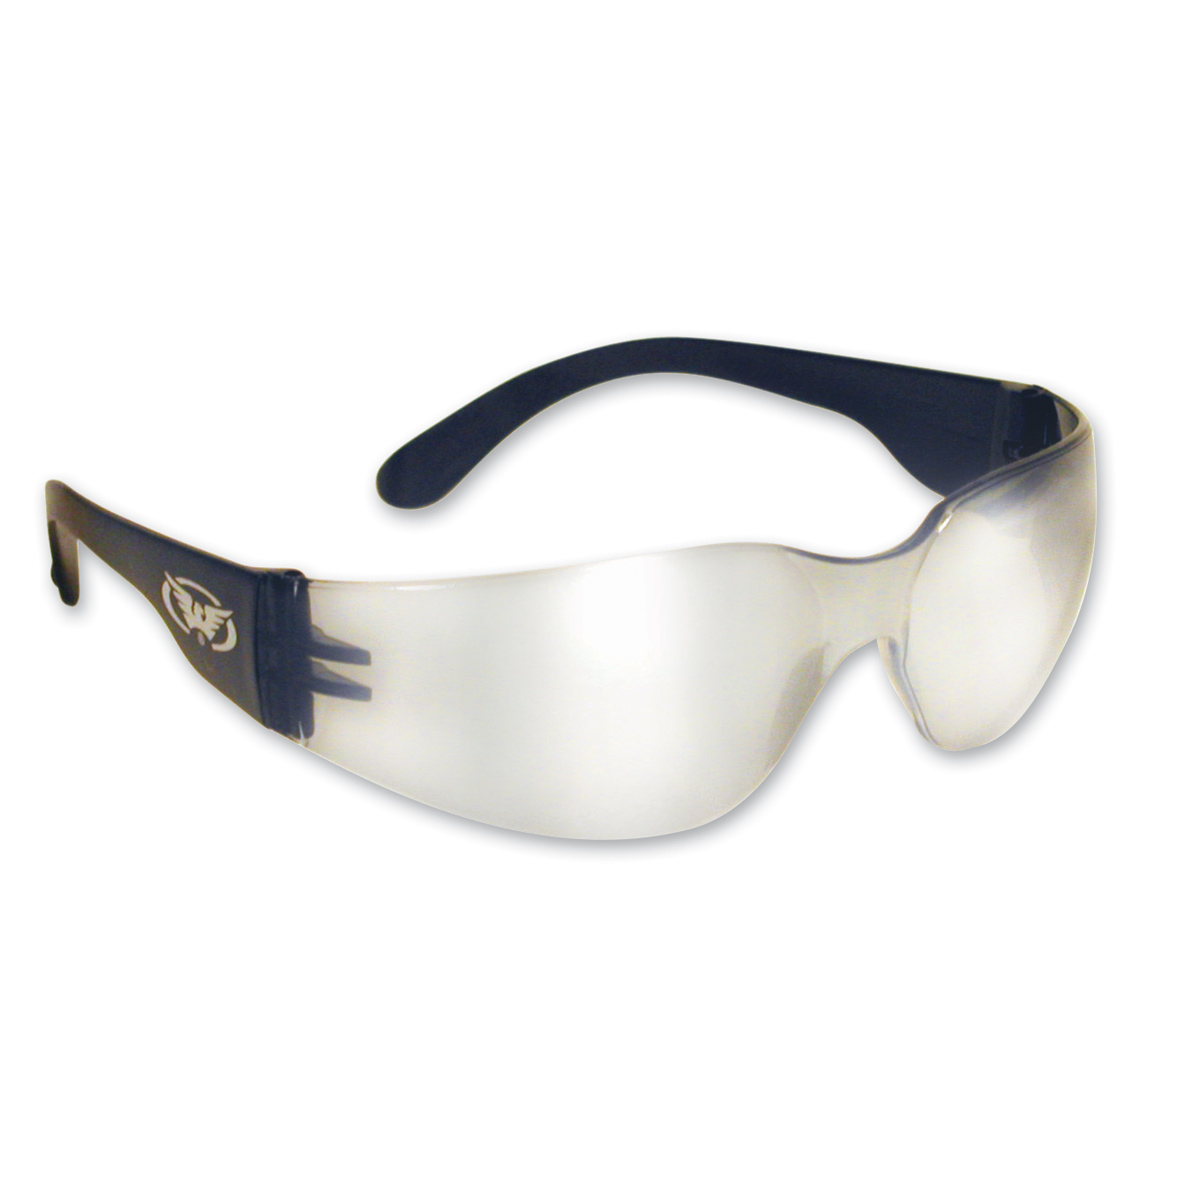 Global Vision Eyewear Rider Sunglasses with Clear Mirror Lens